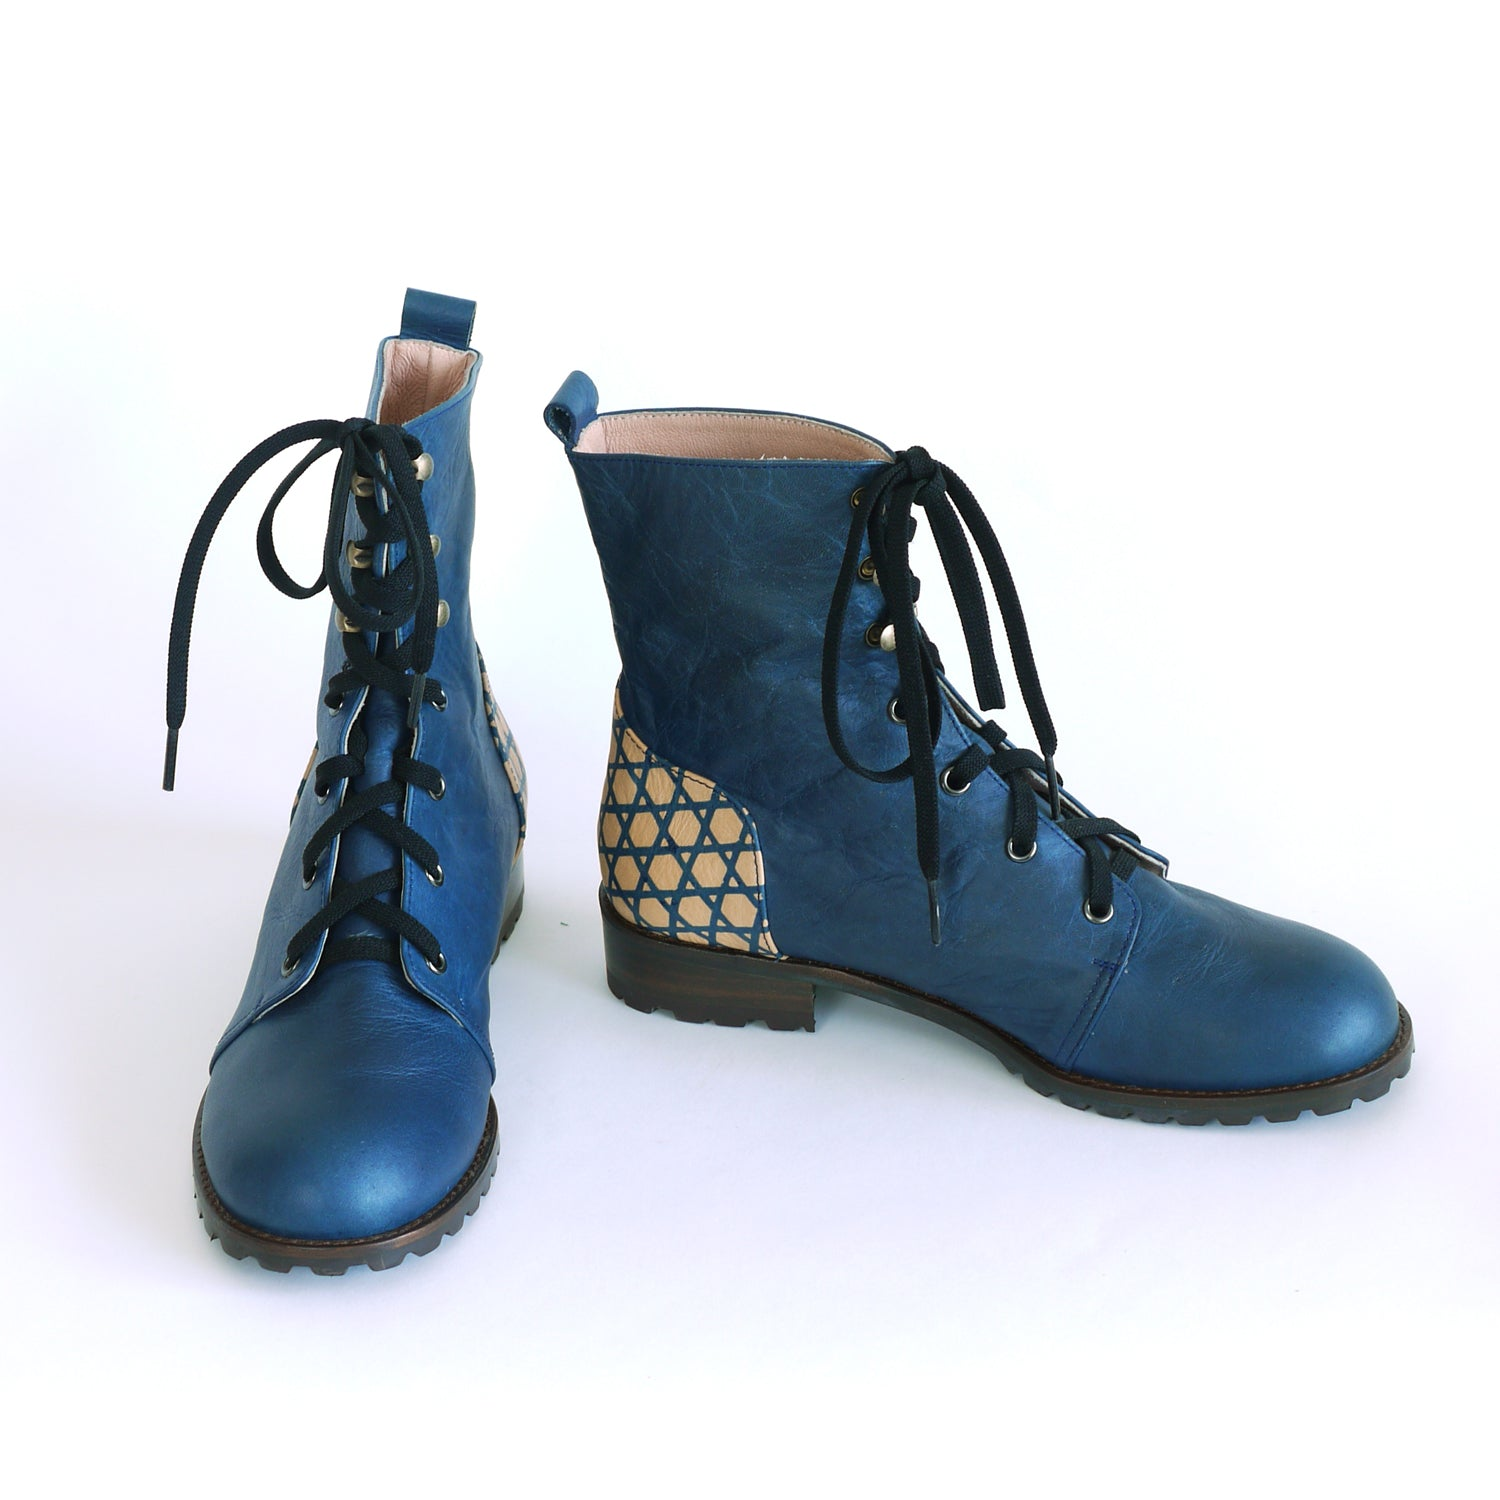 Indigo Lace-Up Boots.  Hand built indigo Leather boots.  BASKET WEAVE.  Katazome indigo boots.